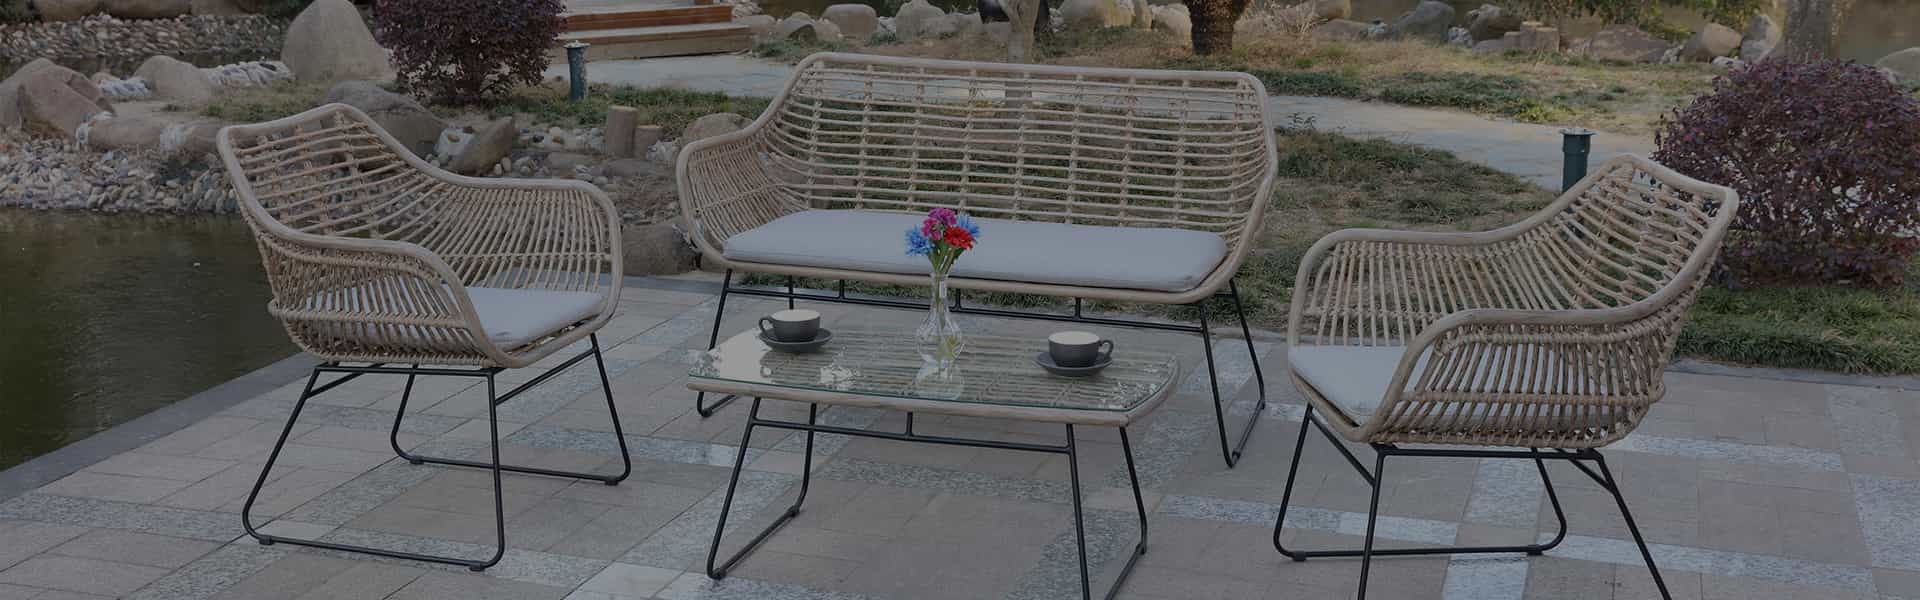 Brand New Garden Furniture - Patio - Garden - Outdoors - Balcony - Outside - Furniture - Lounge - Dining - living - Comfort - Modern - New - Steptoes - Paphos - Cyprus